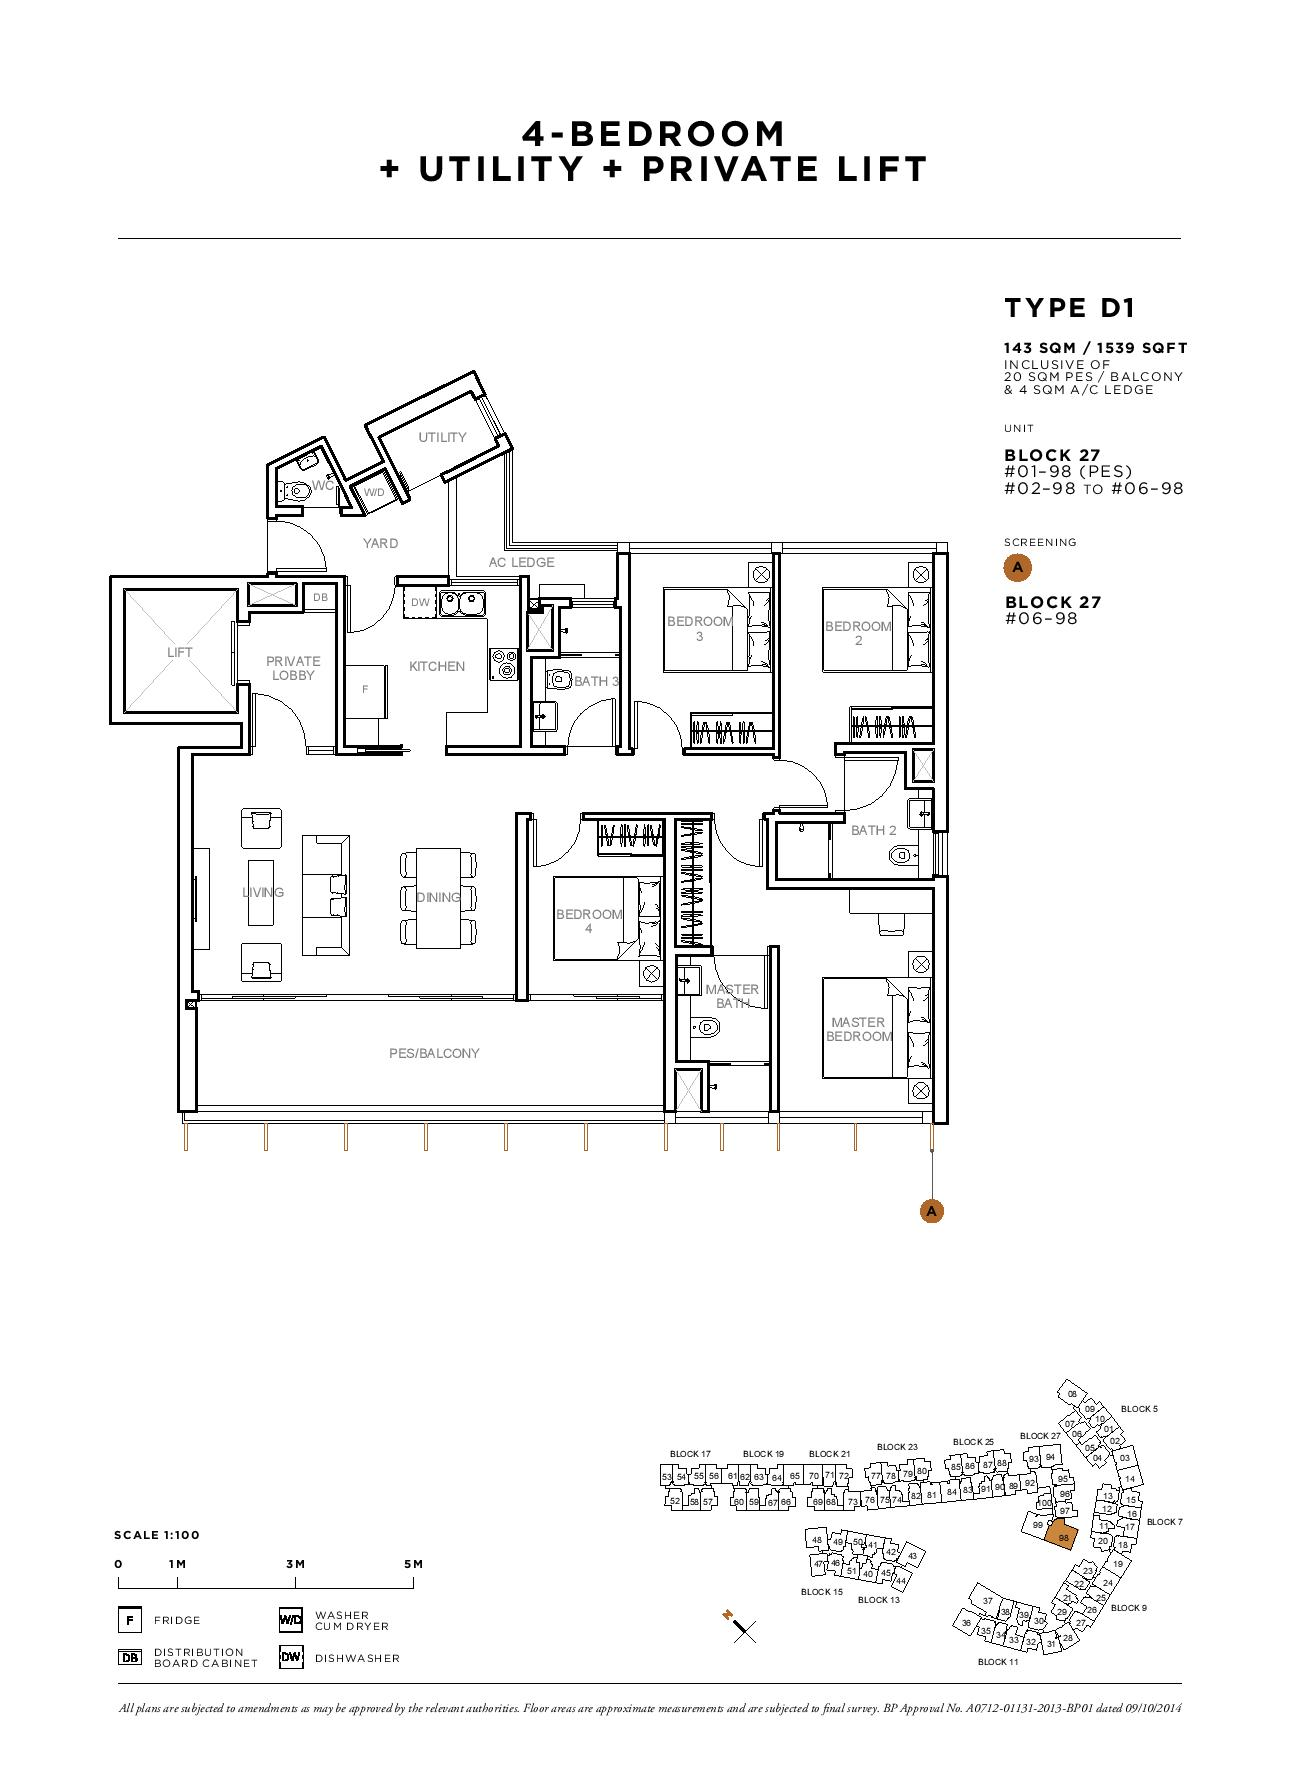 Sophia Hills 4 Bedroom + Utility Private Lift Type D1 Floor Plans